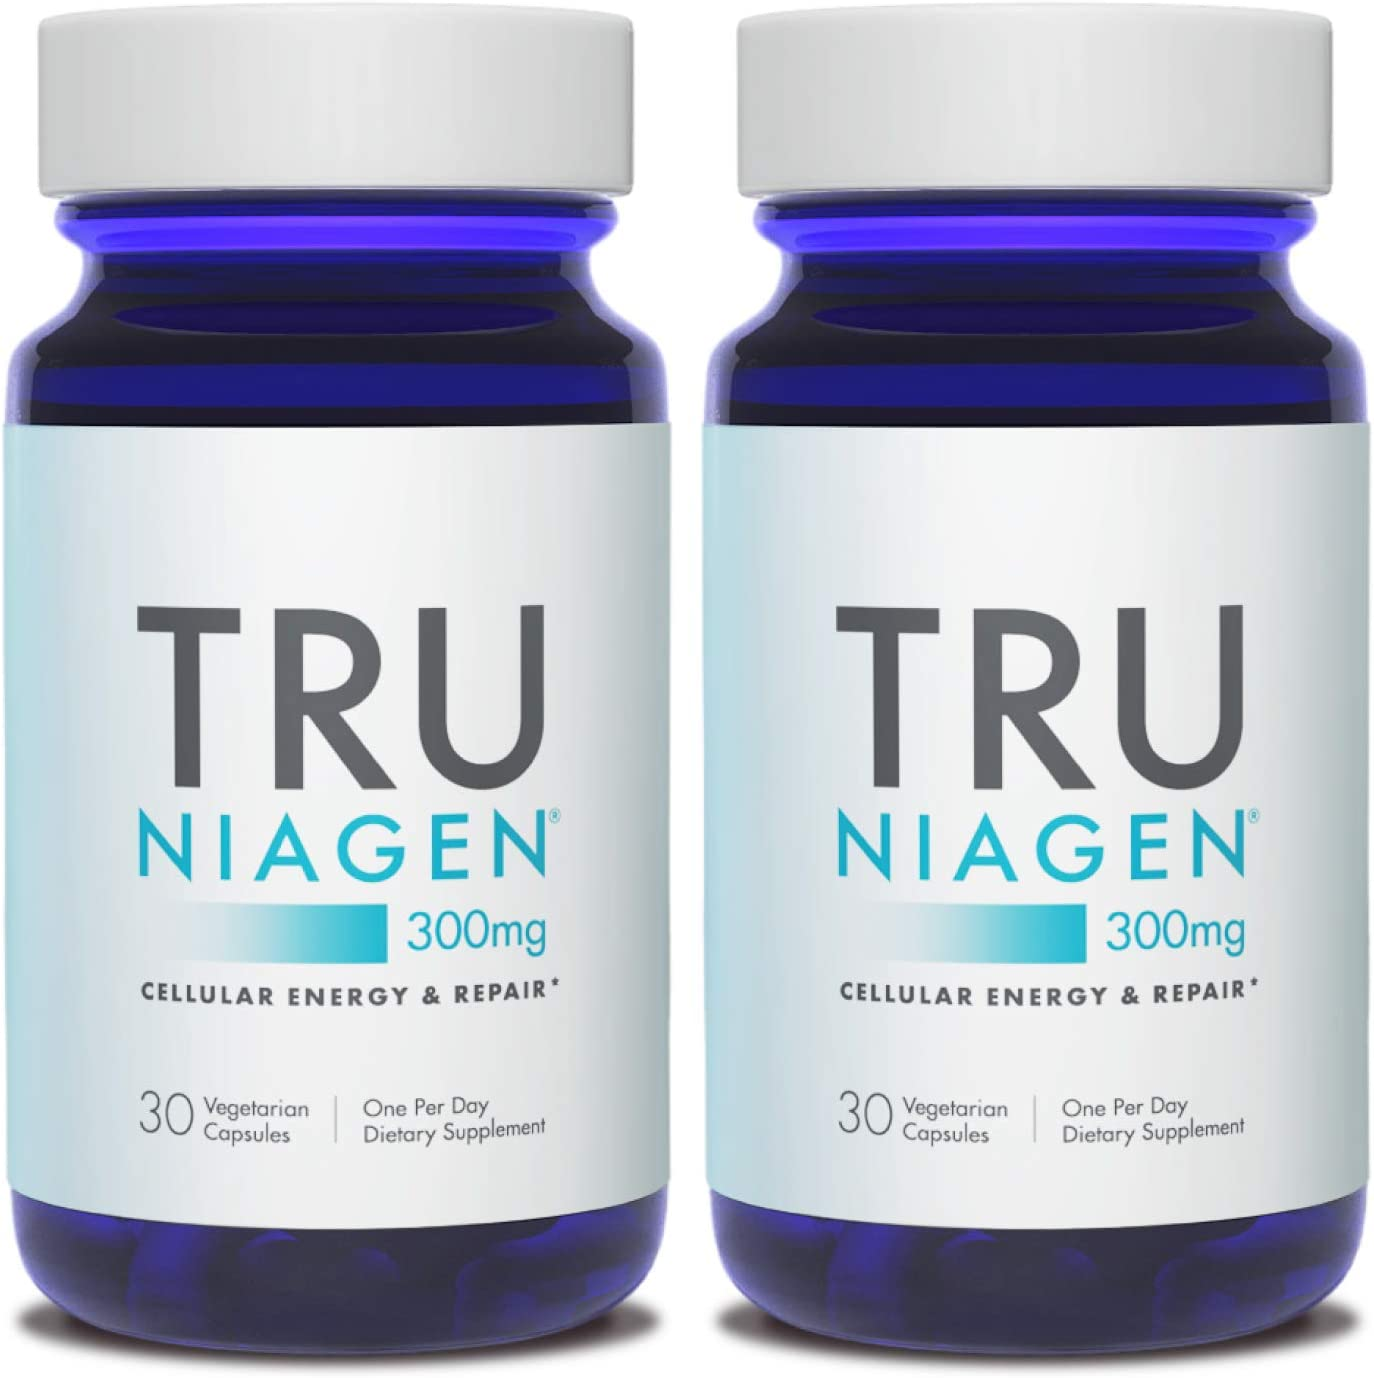 TRU NIAGEN NAD+ Booster for Cellular Repair & Energy Metabolism (Nicotinamide Riboside) - 300mg Vegetarian Capsules, 300mg Per Serving - 30 Day Bottle (2 Pack)